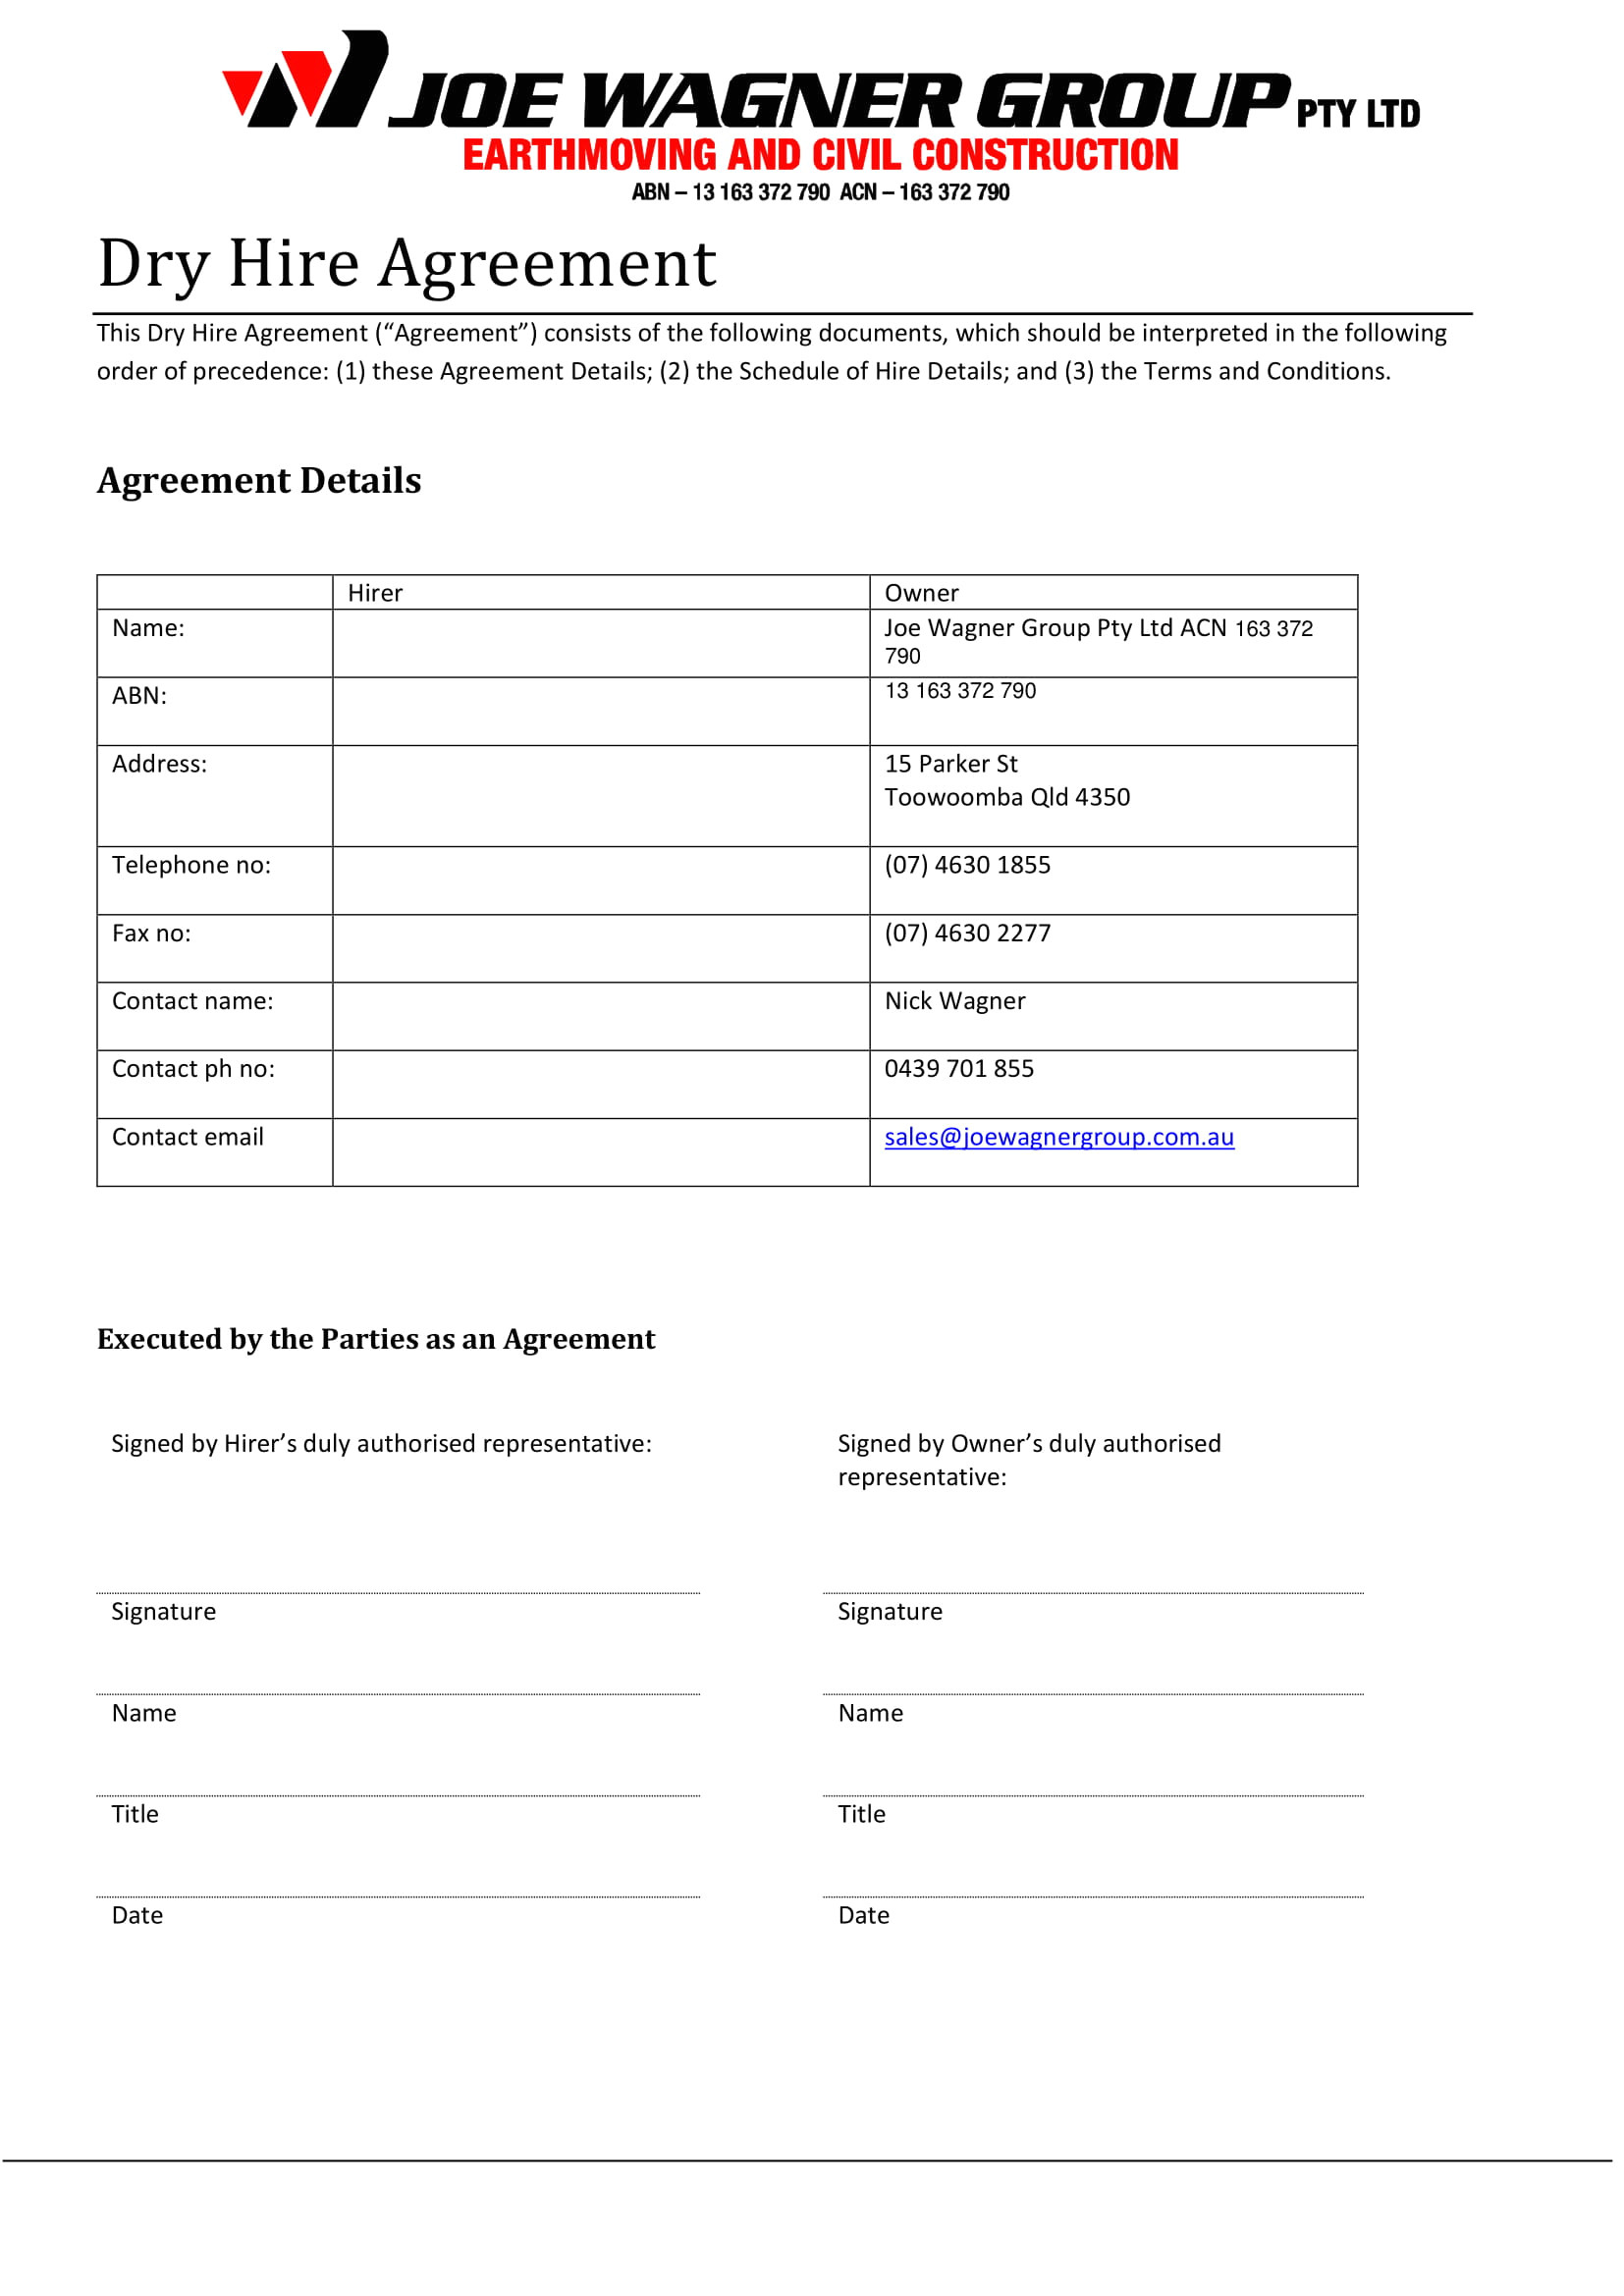 Dry Hire Contract Template 10 Hire Agreement Contract forms Pdf Doc